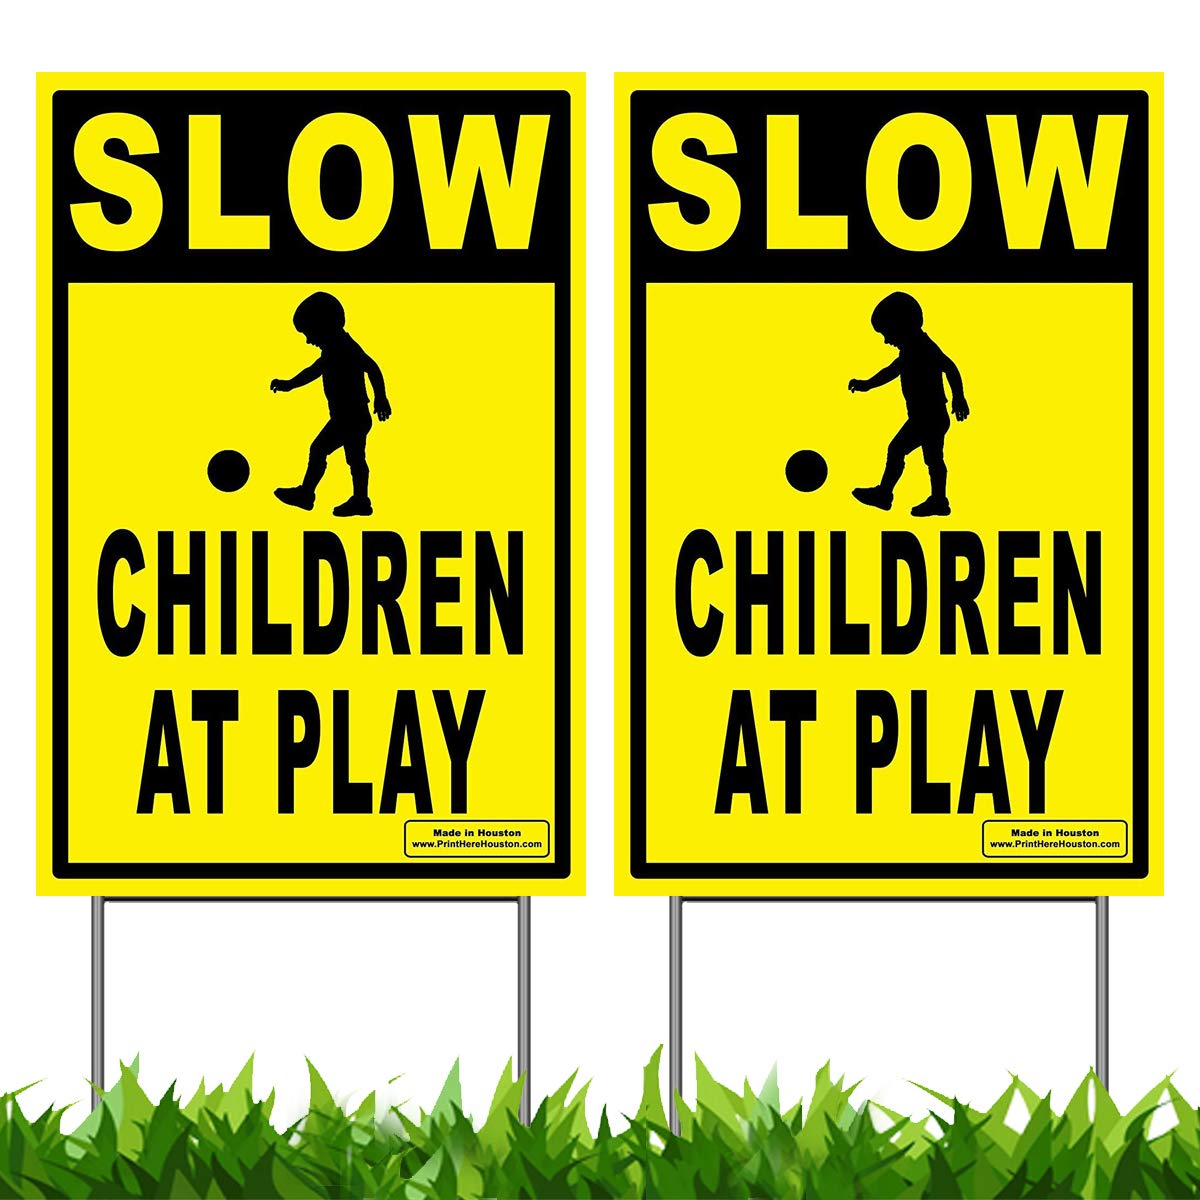 Vibe Ink Pack of 2 Slow - Children at Play Caution Yard Signs - Lawn Sign + Metal Stakes (Double Pack)